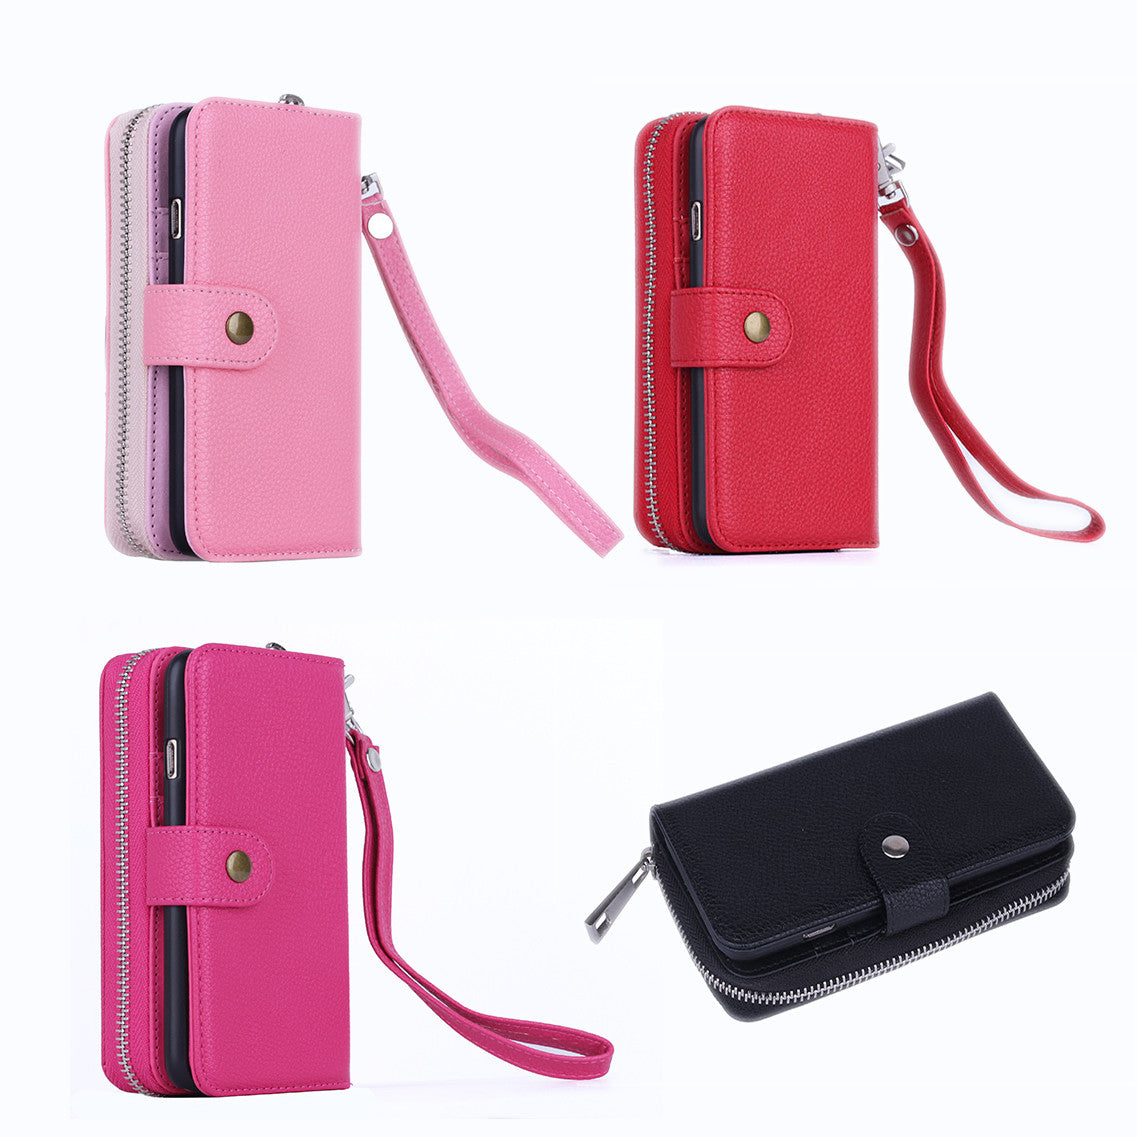 shopify-iPhone 6/6 Plus Clutch Purse with Detachable Phone Case-4